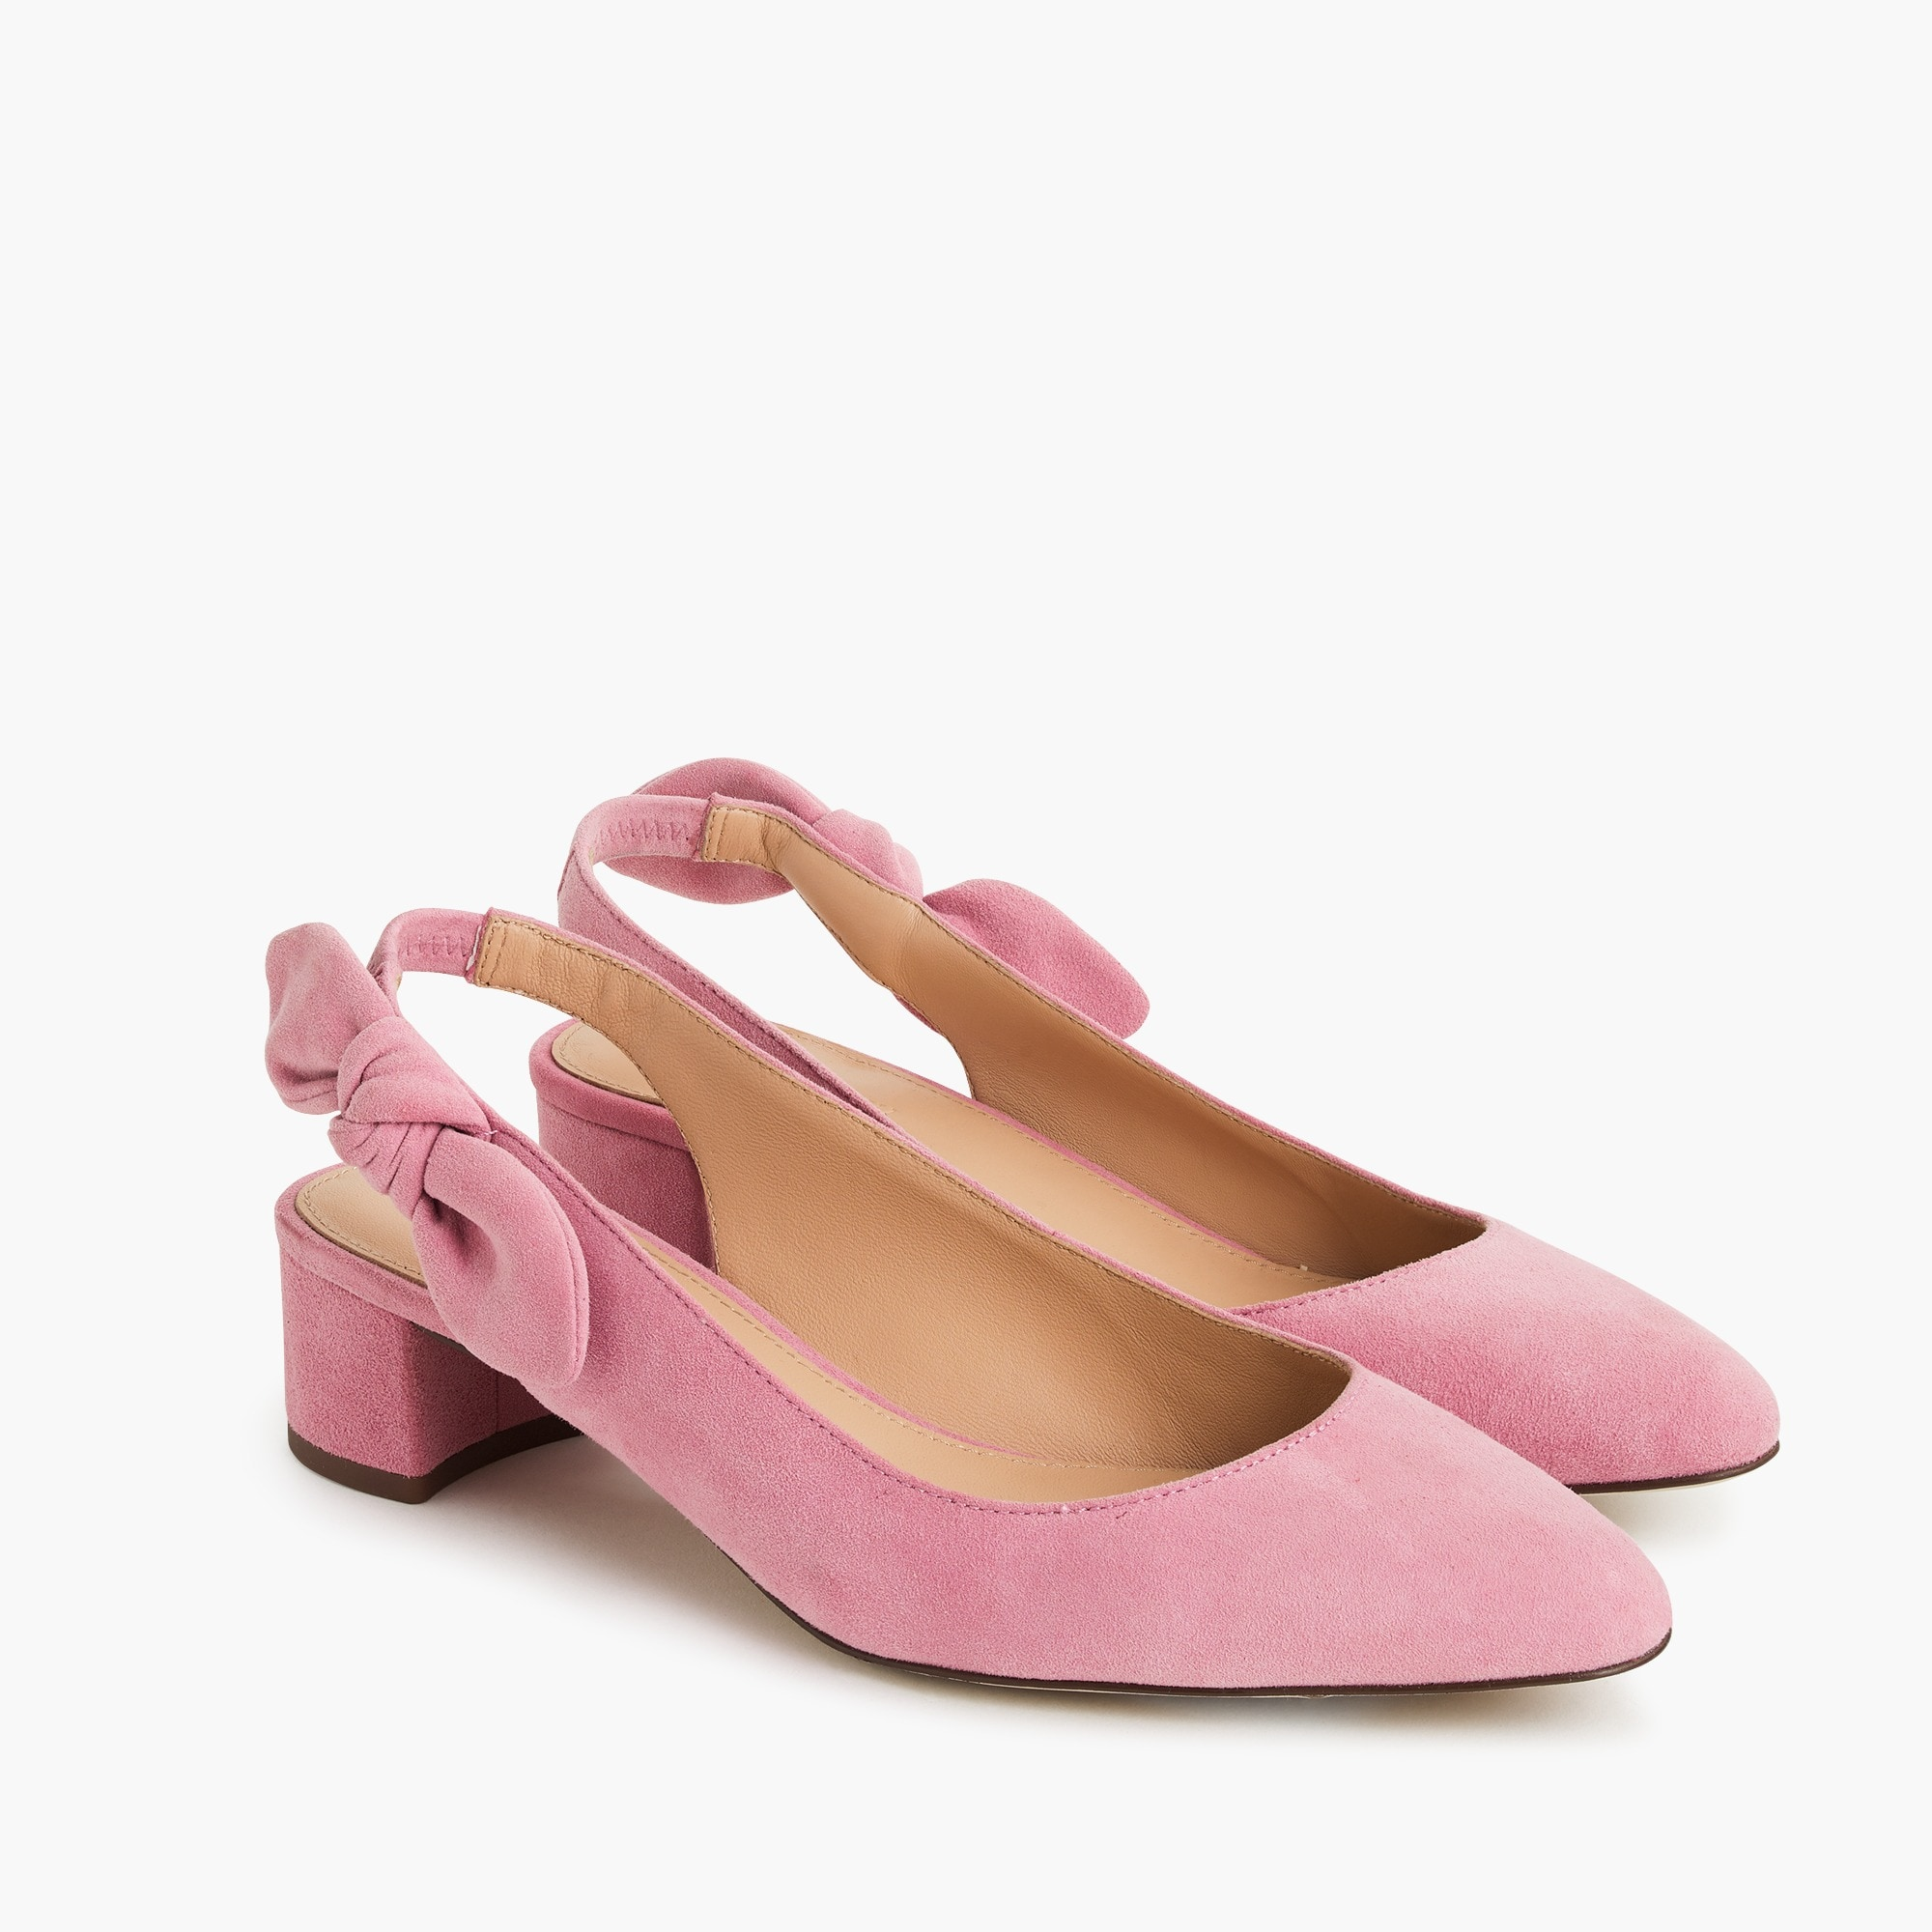 womens Slingback bow pumps (40mm) in suede